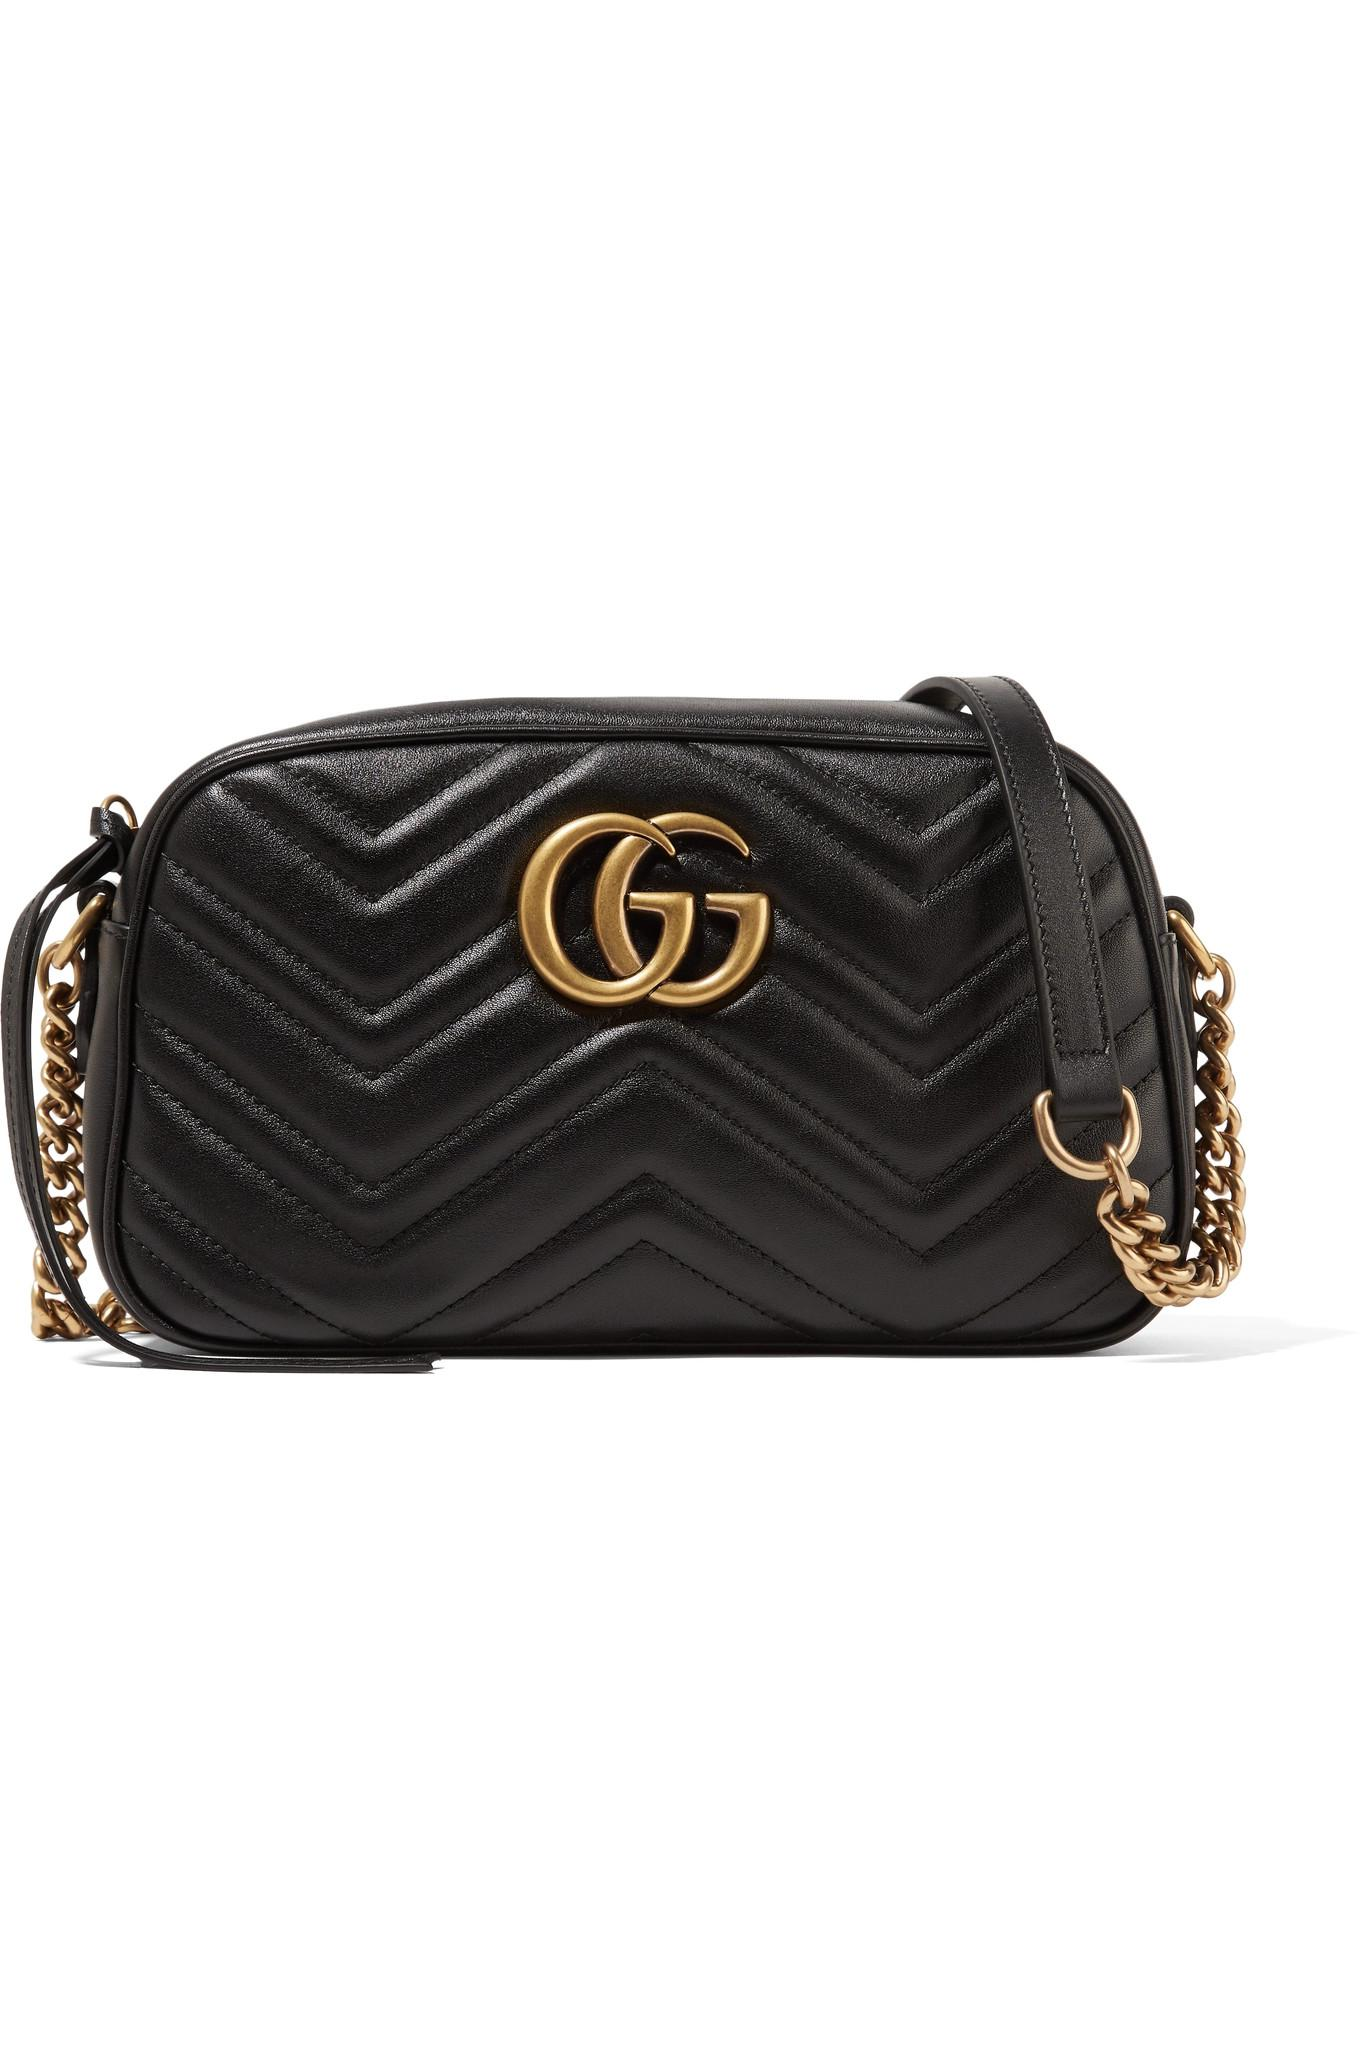 a00eb14b2d2 Gucci. Women s Black Gg Marmont Camera Small Quilted Leather Shoulder Bag